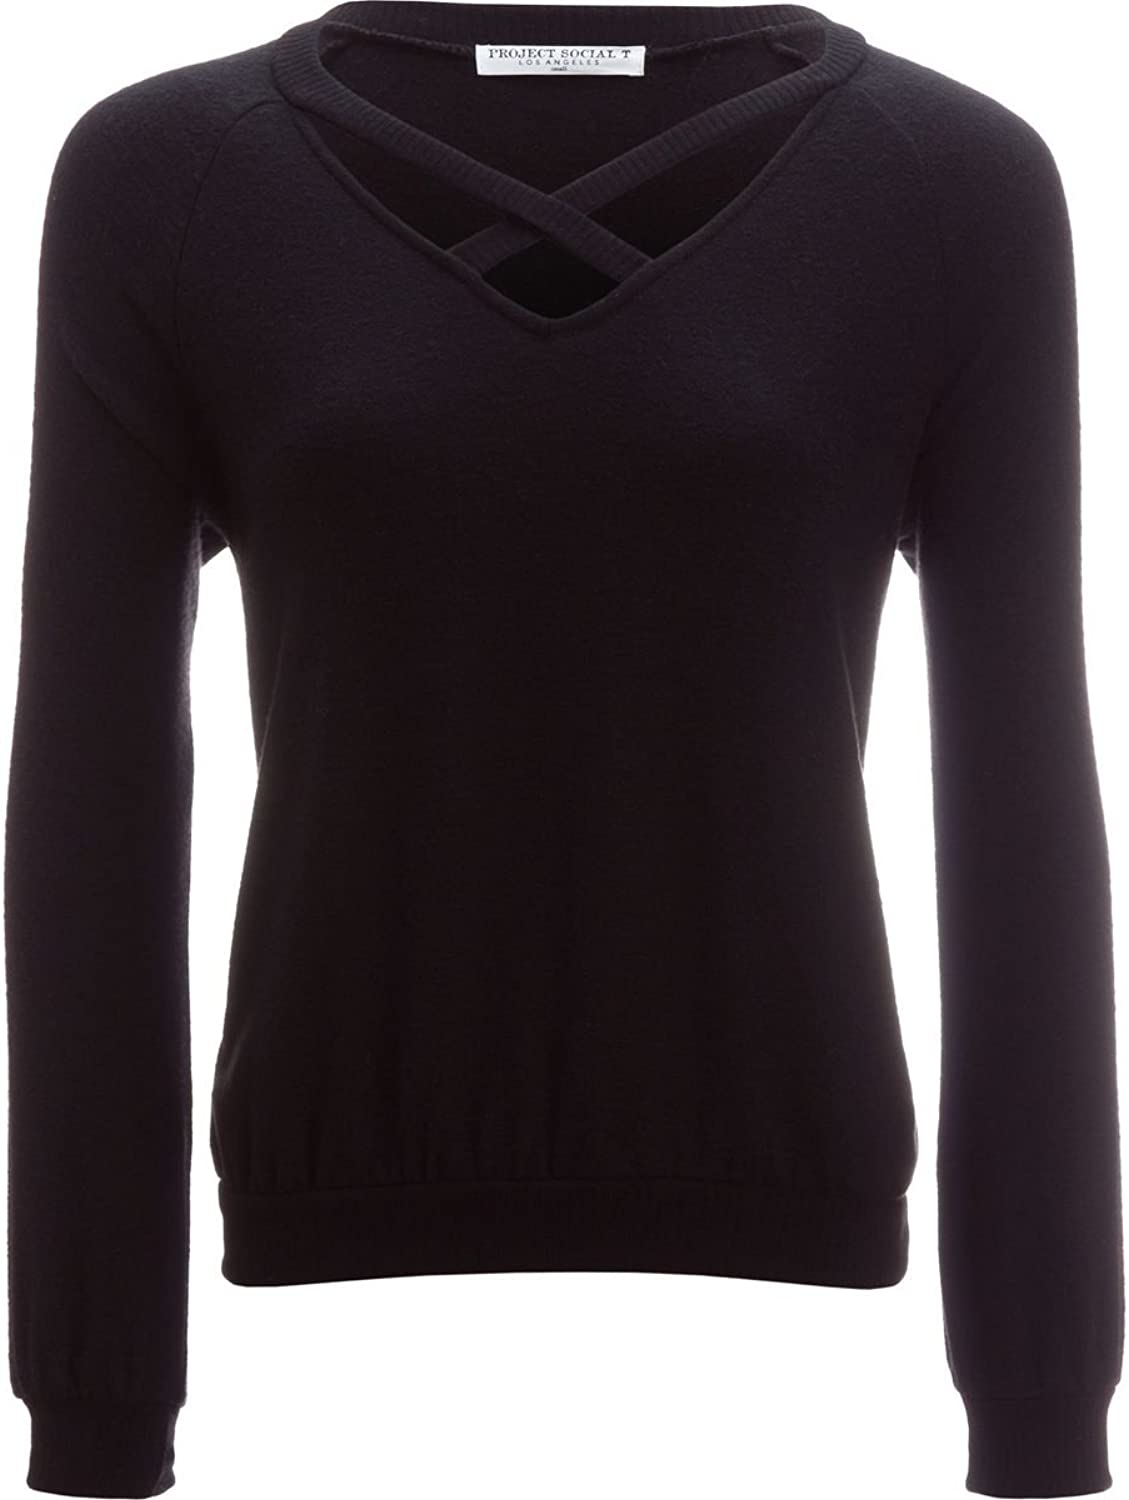 Project Social T Womens Path That X Casual Long Sleeves Sweatshirt